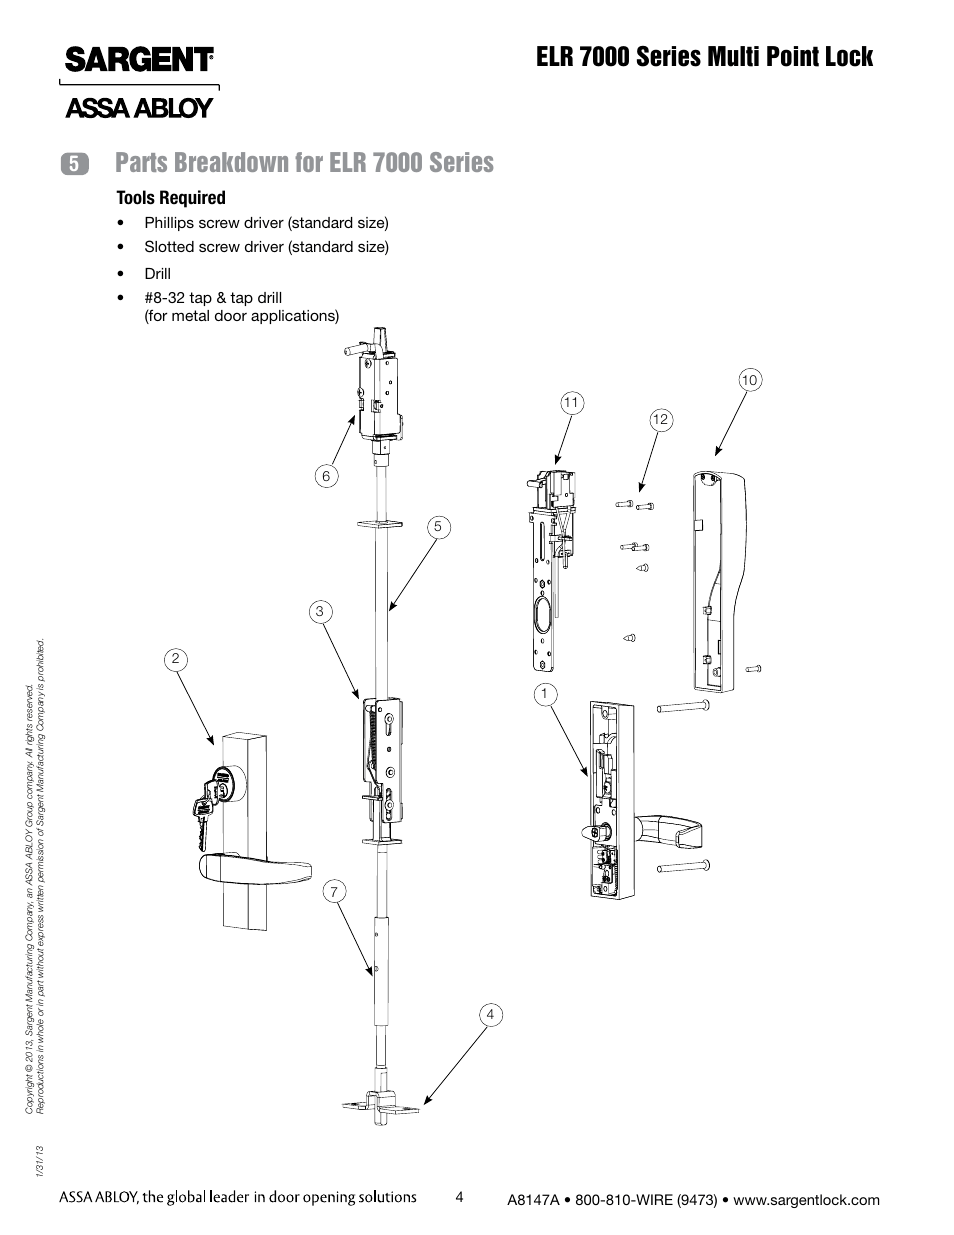 Elr 7000 series multi point lock, Parts breakdown for elr